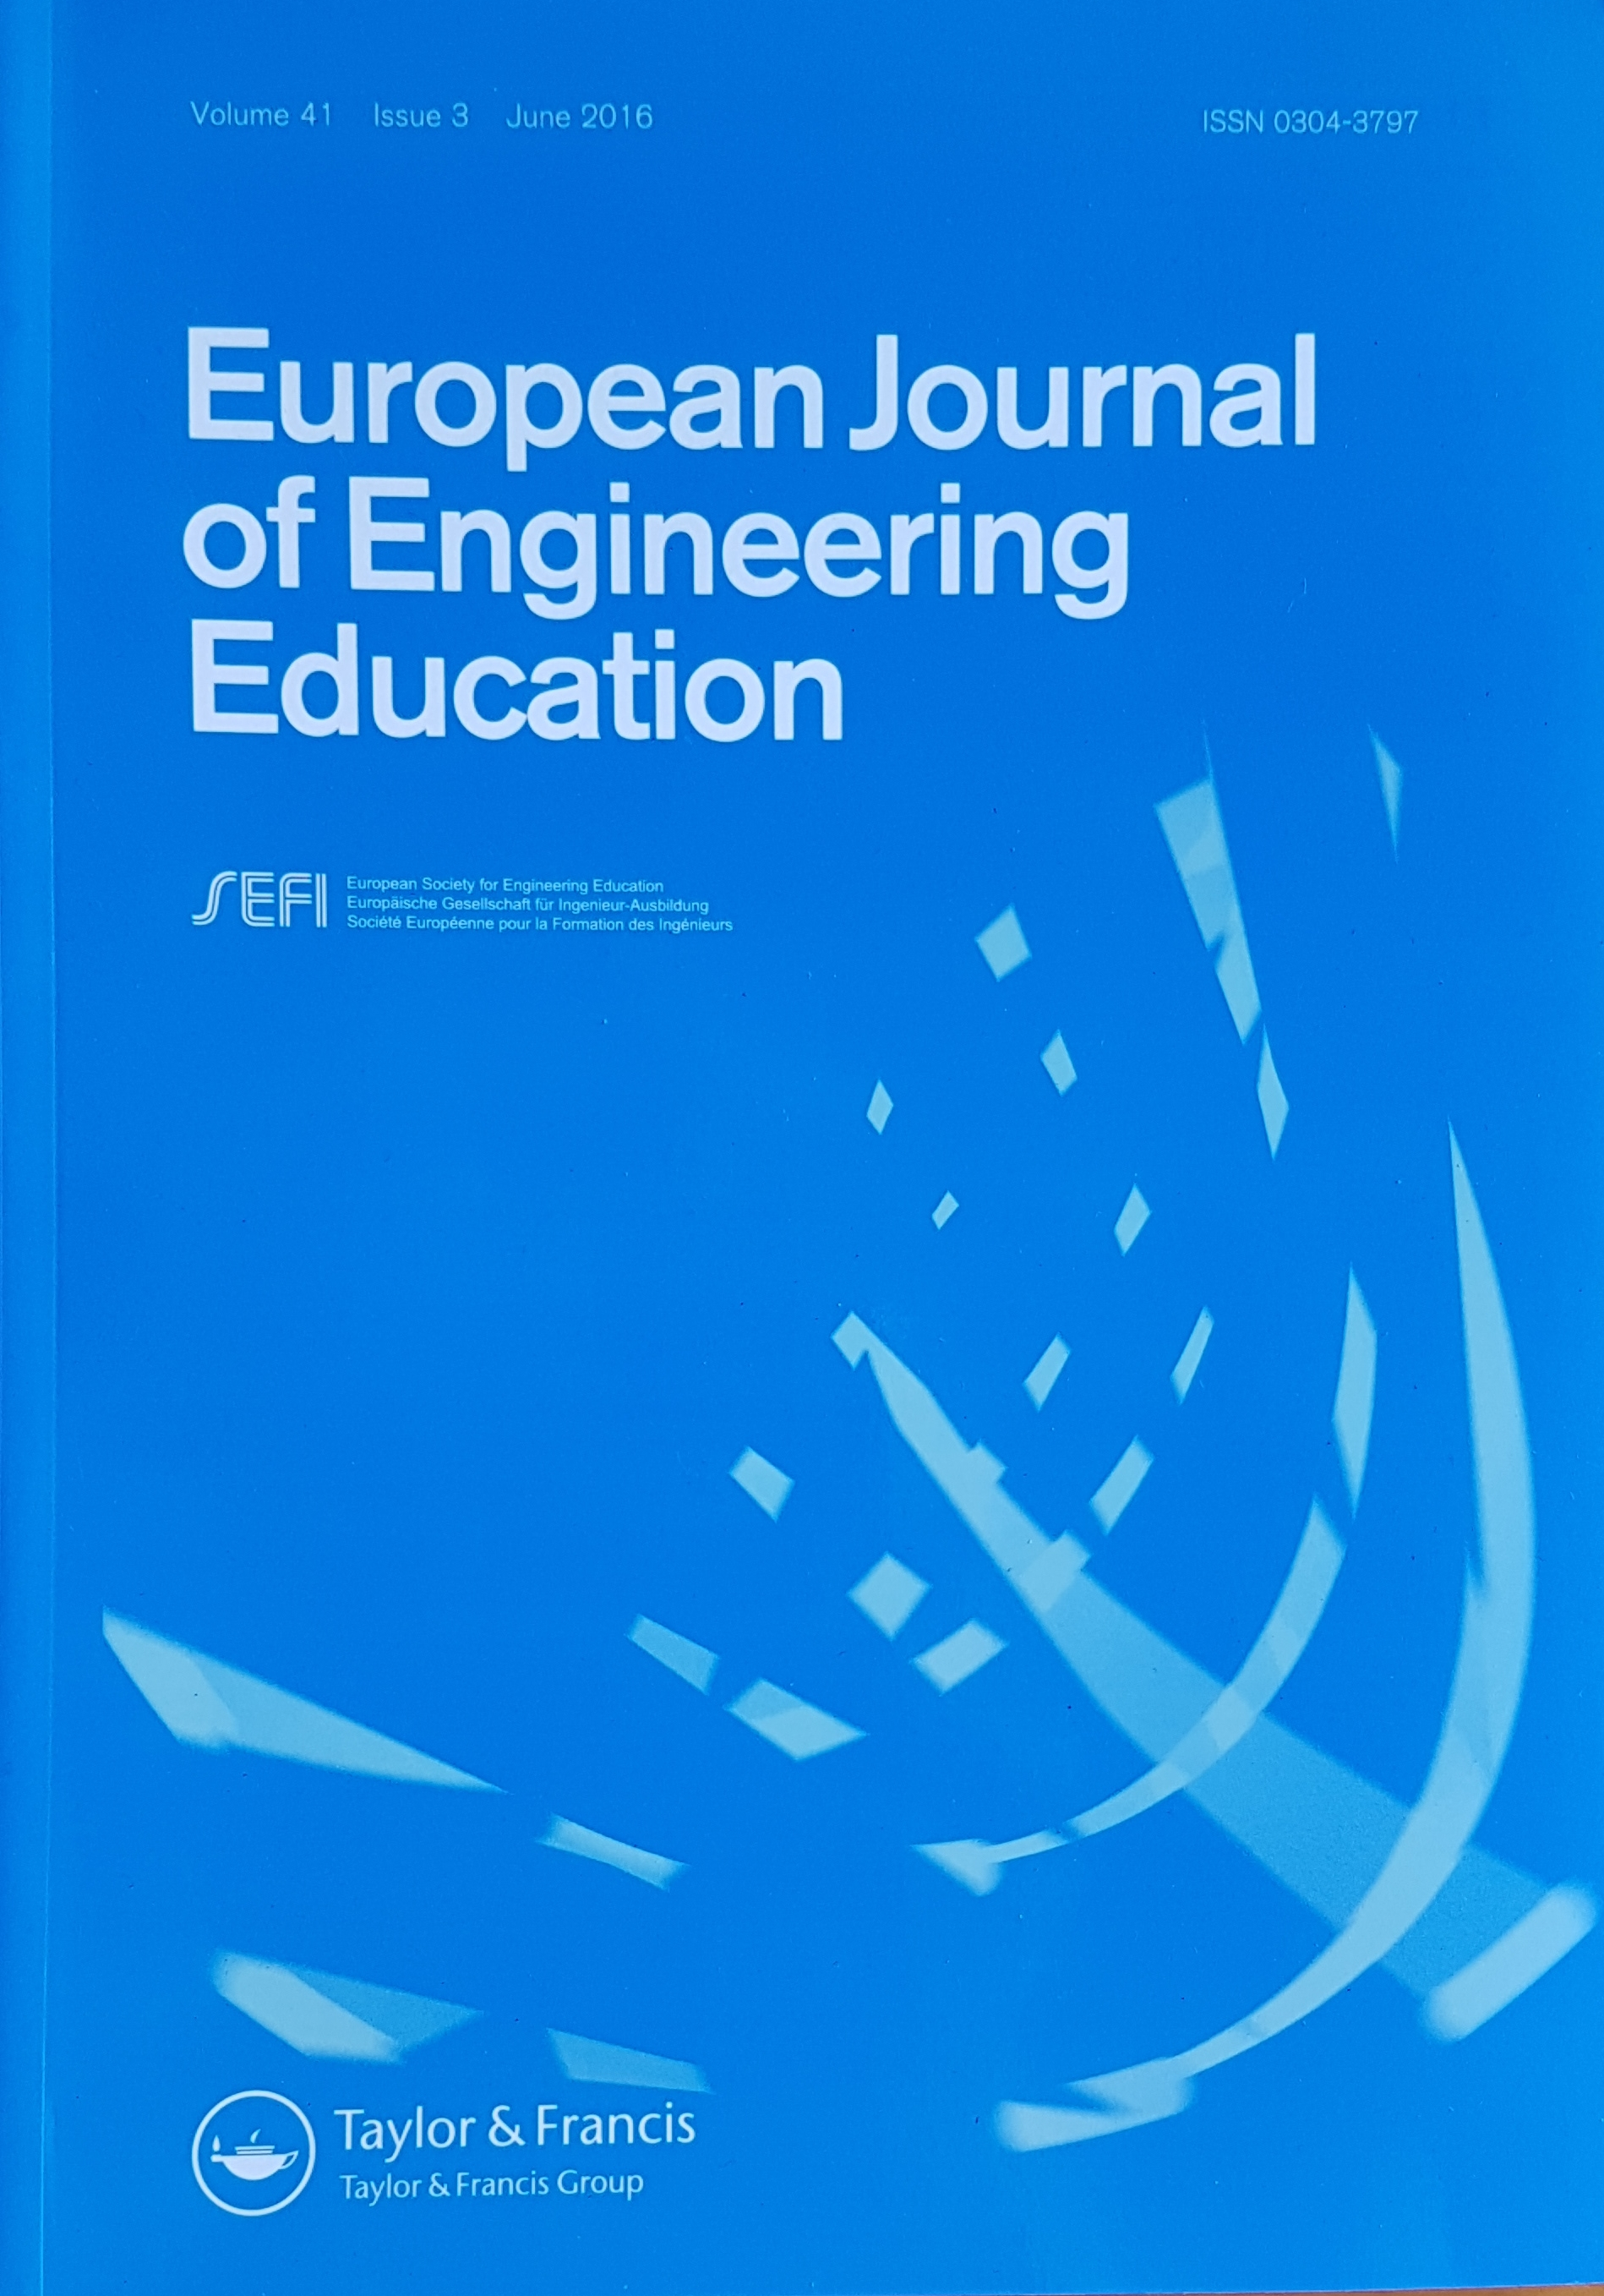 News About The European Journal Of Engineering Education